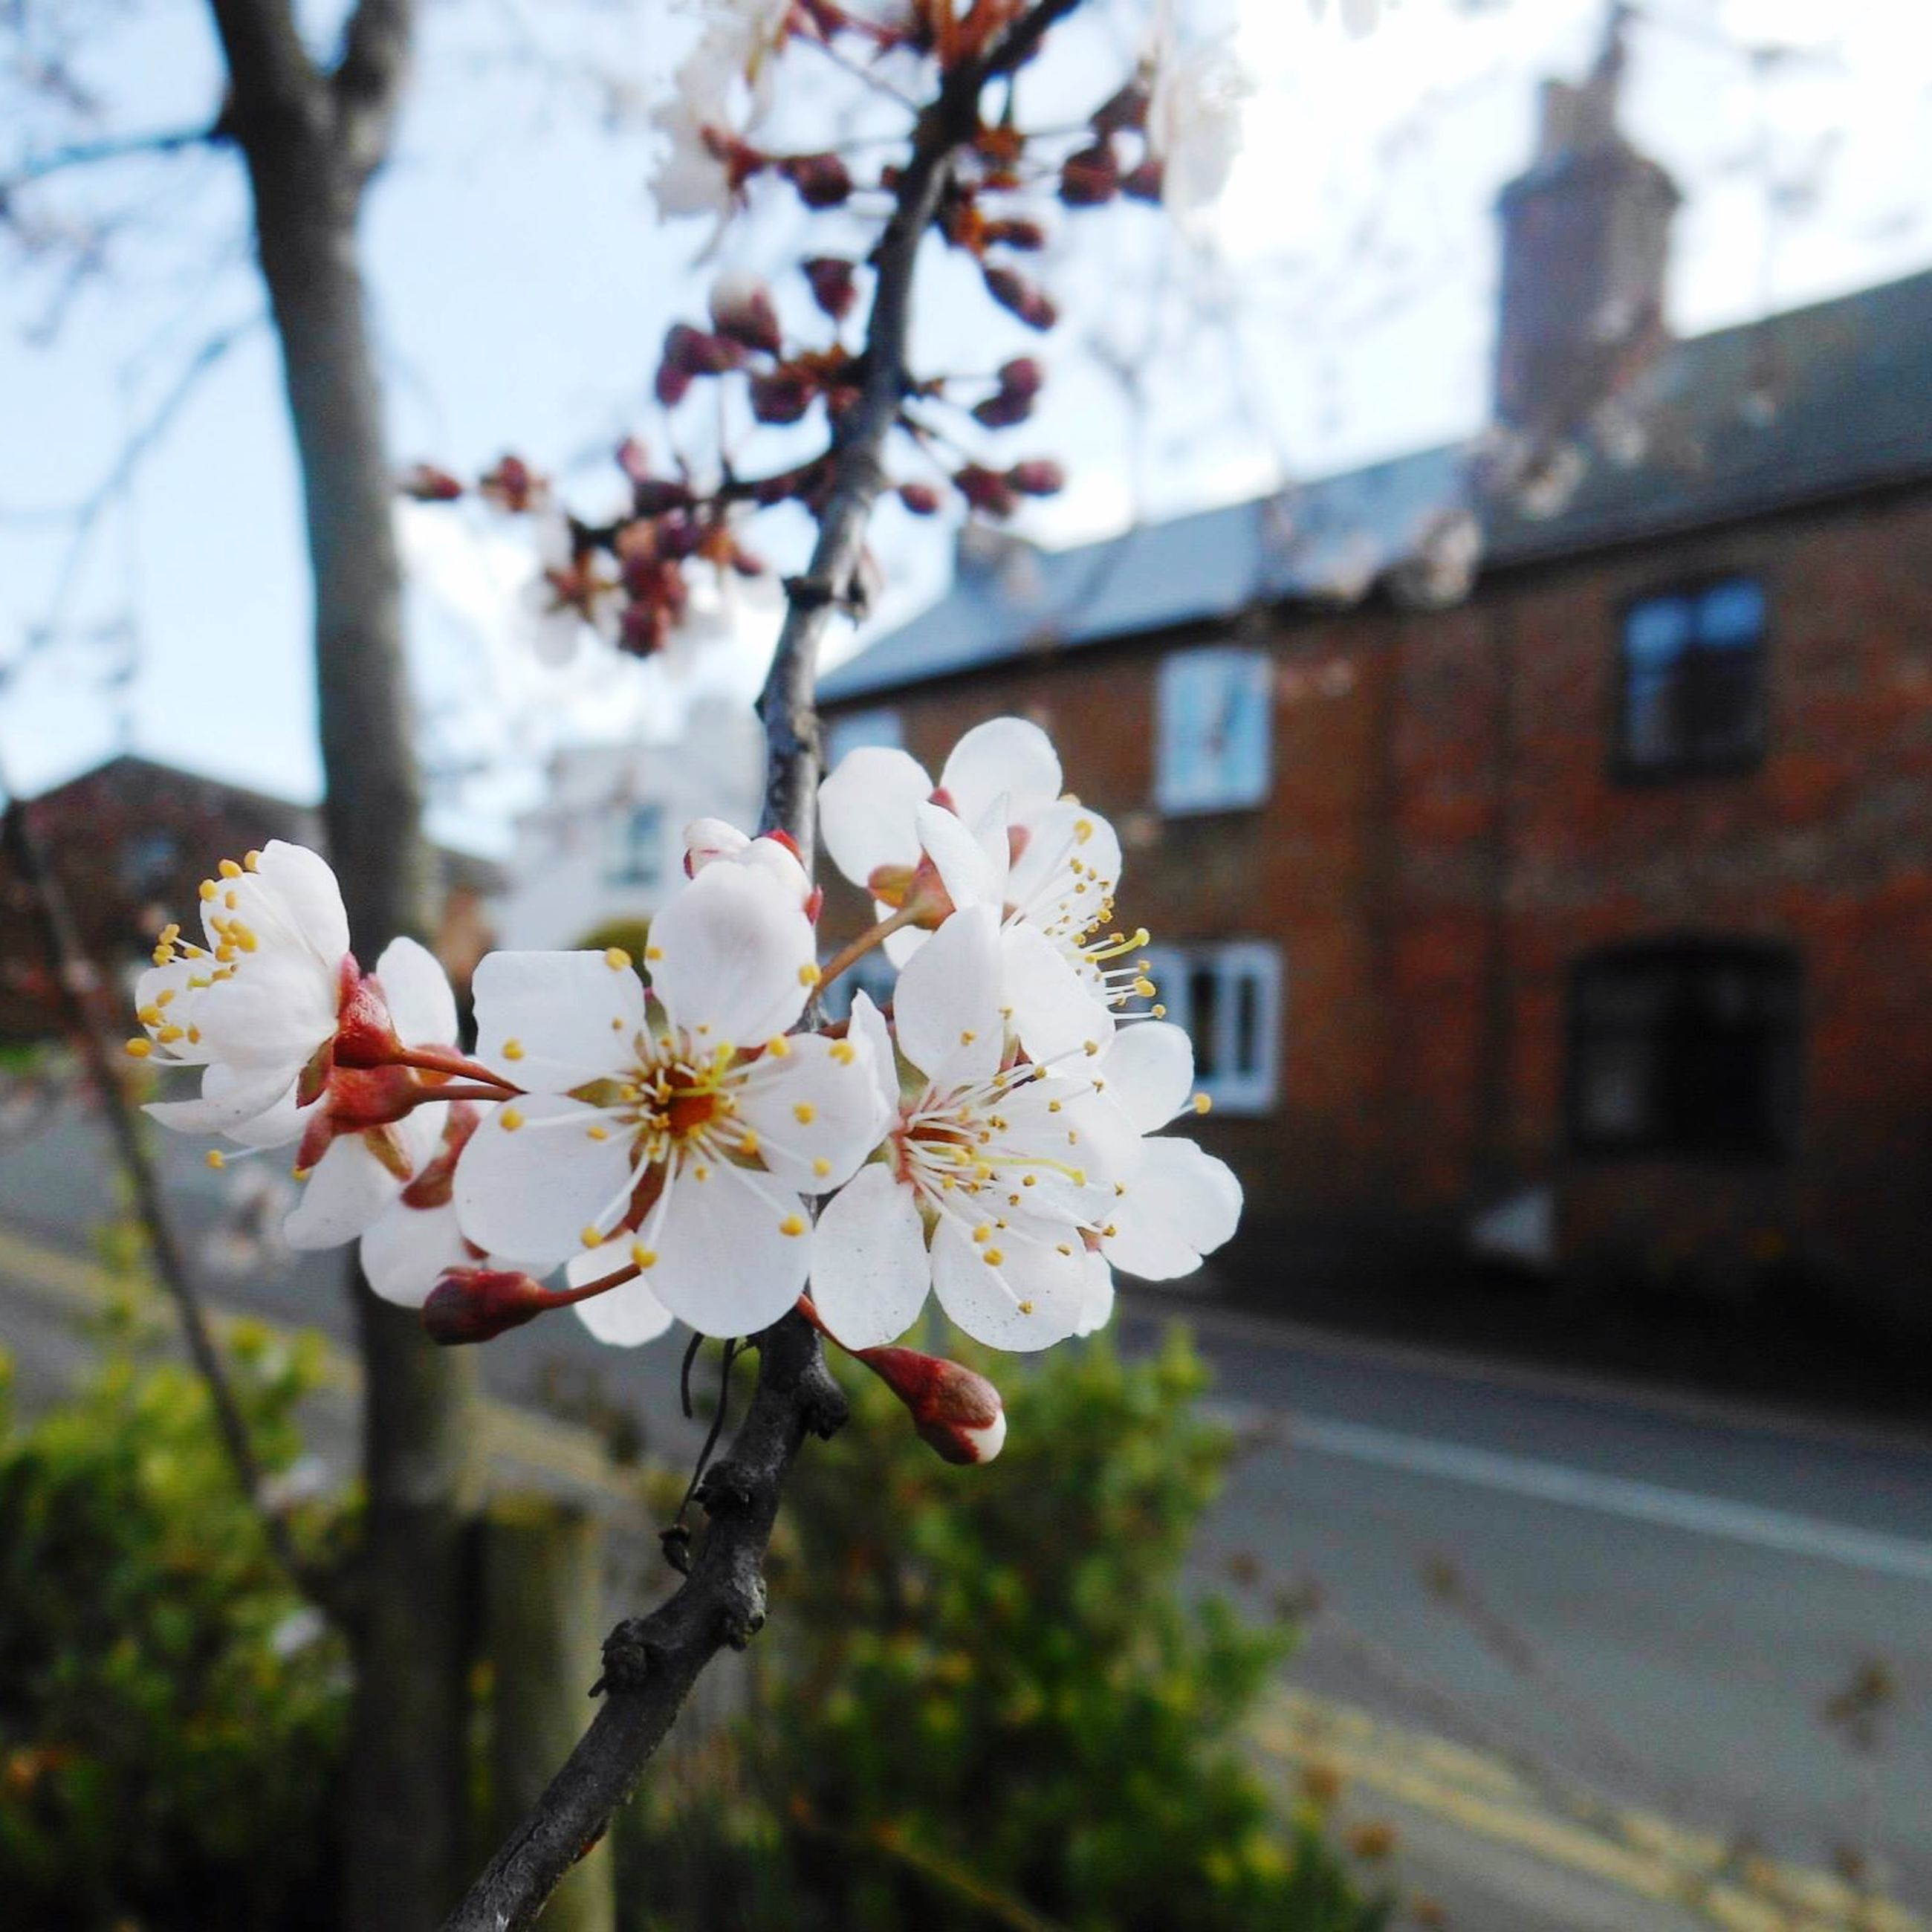 flower, freshness, branch, tree, fragility, growth, cherry blossom, focus on foreground, blossom, petal, cherry tree, building exterior, nature, beauty in nature, close-up, in bloom, built structure, apple blossom, fruit tree, twig